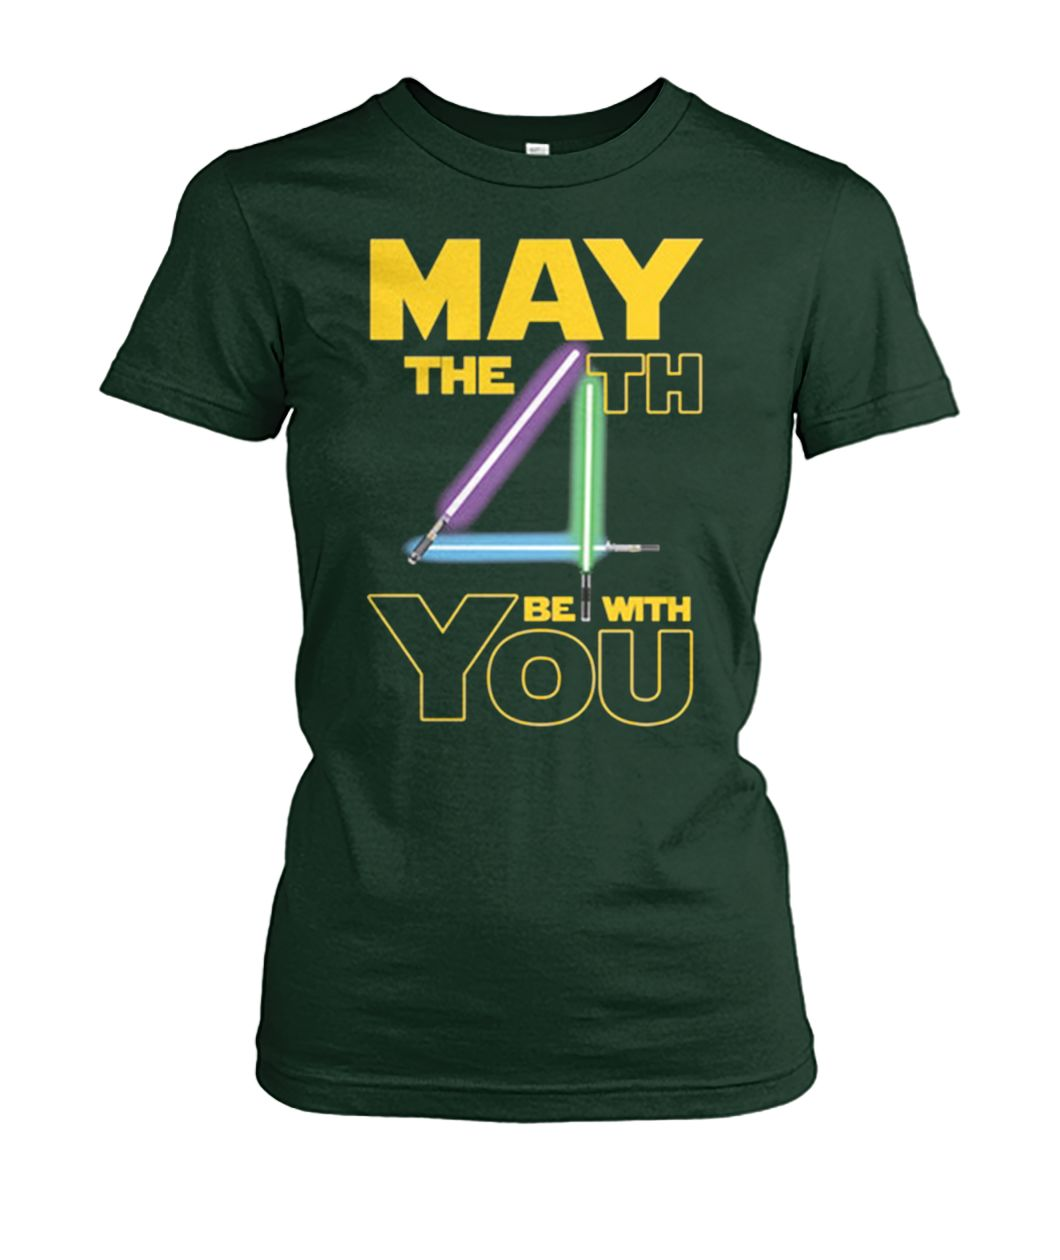 [Hot version] Star wars may the 4th be with you shirt